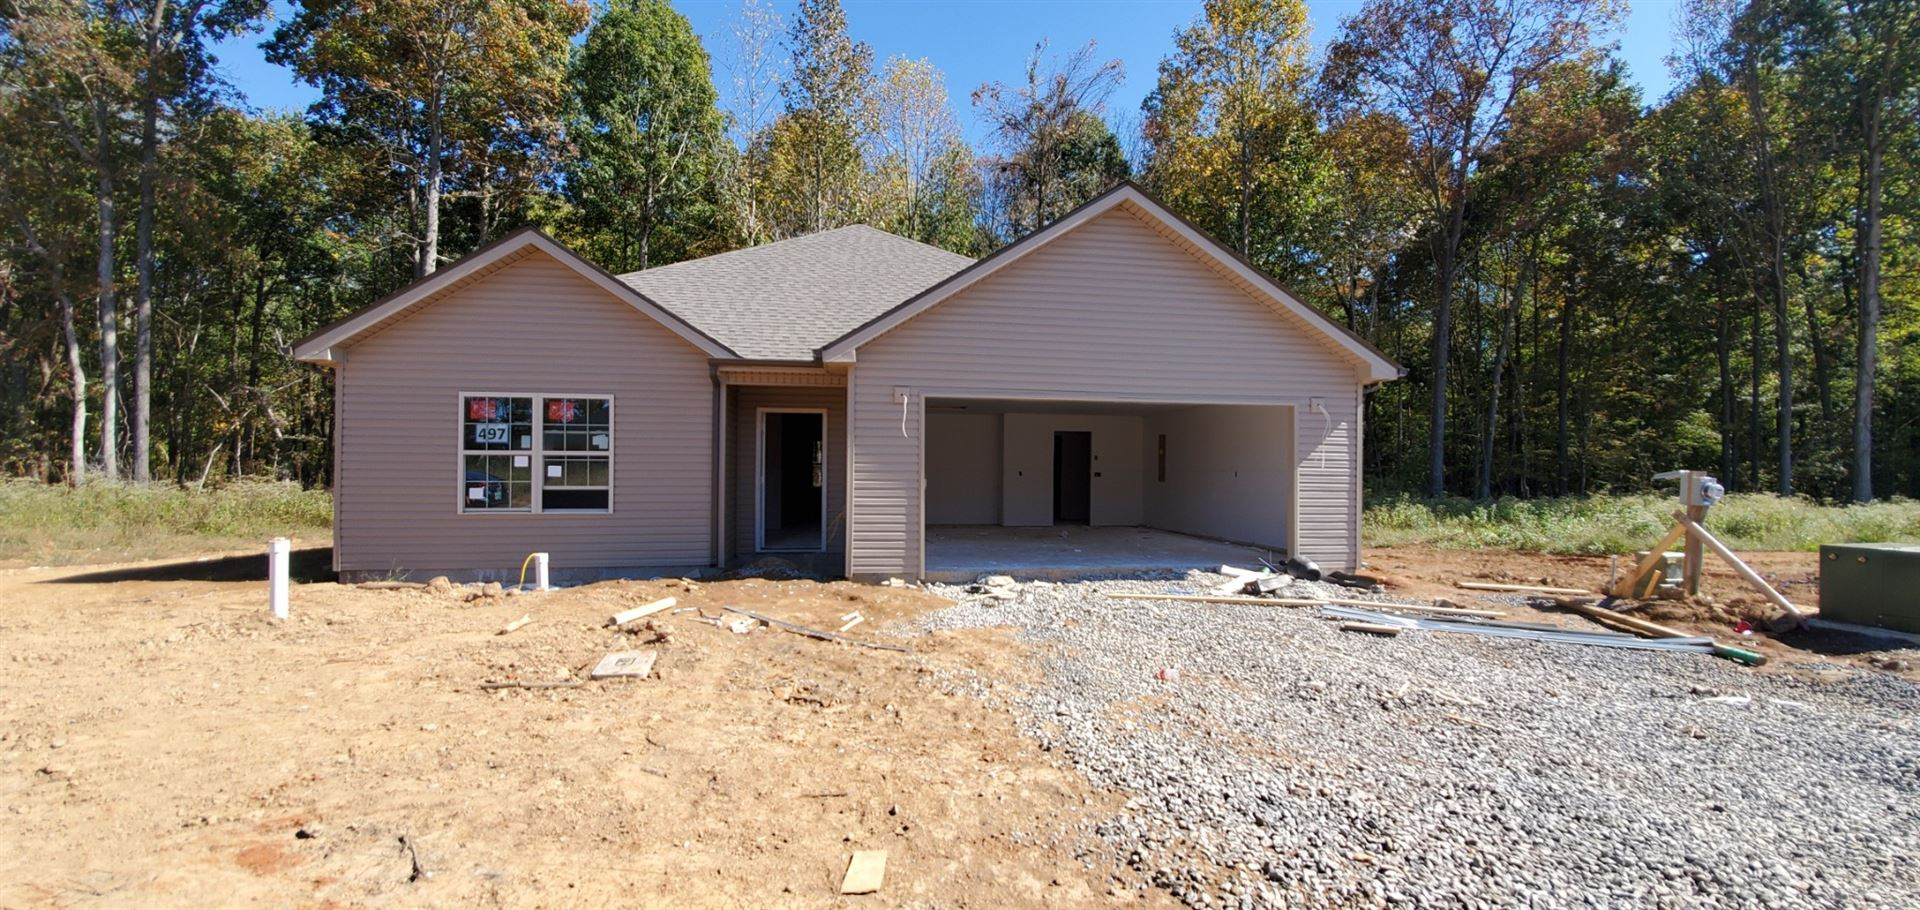 497 Fox Crossing, Clarksville, TN 37040 - MLS#: 2166341